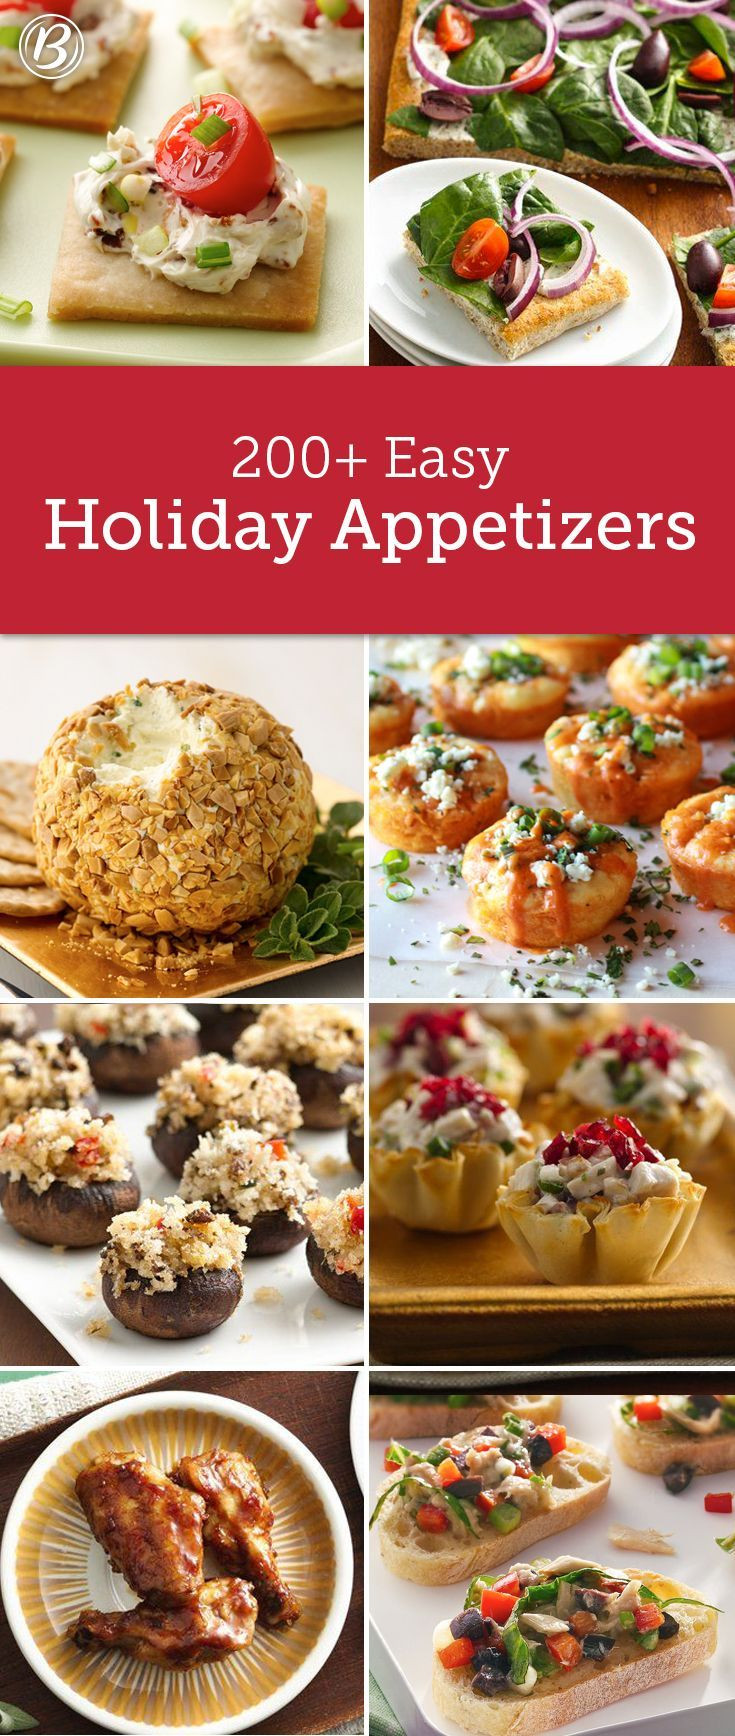 Heavy Appetizers For Christmas Party  55 Festive Apps for Your Christmas Party